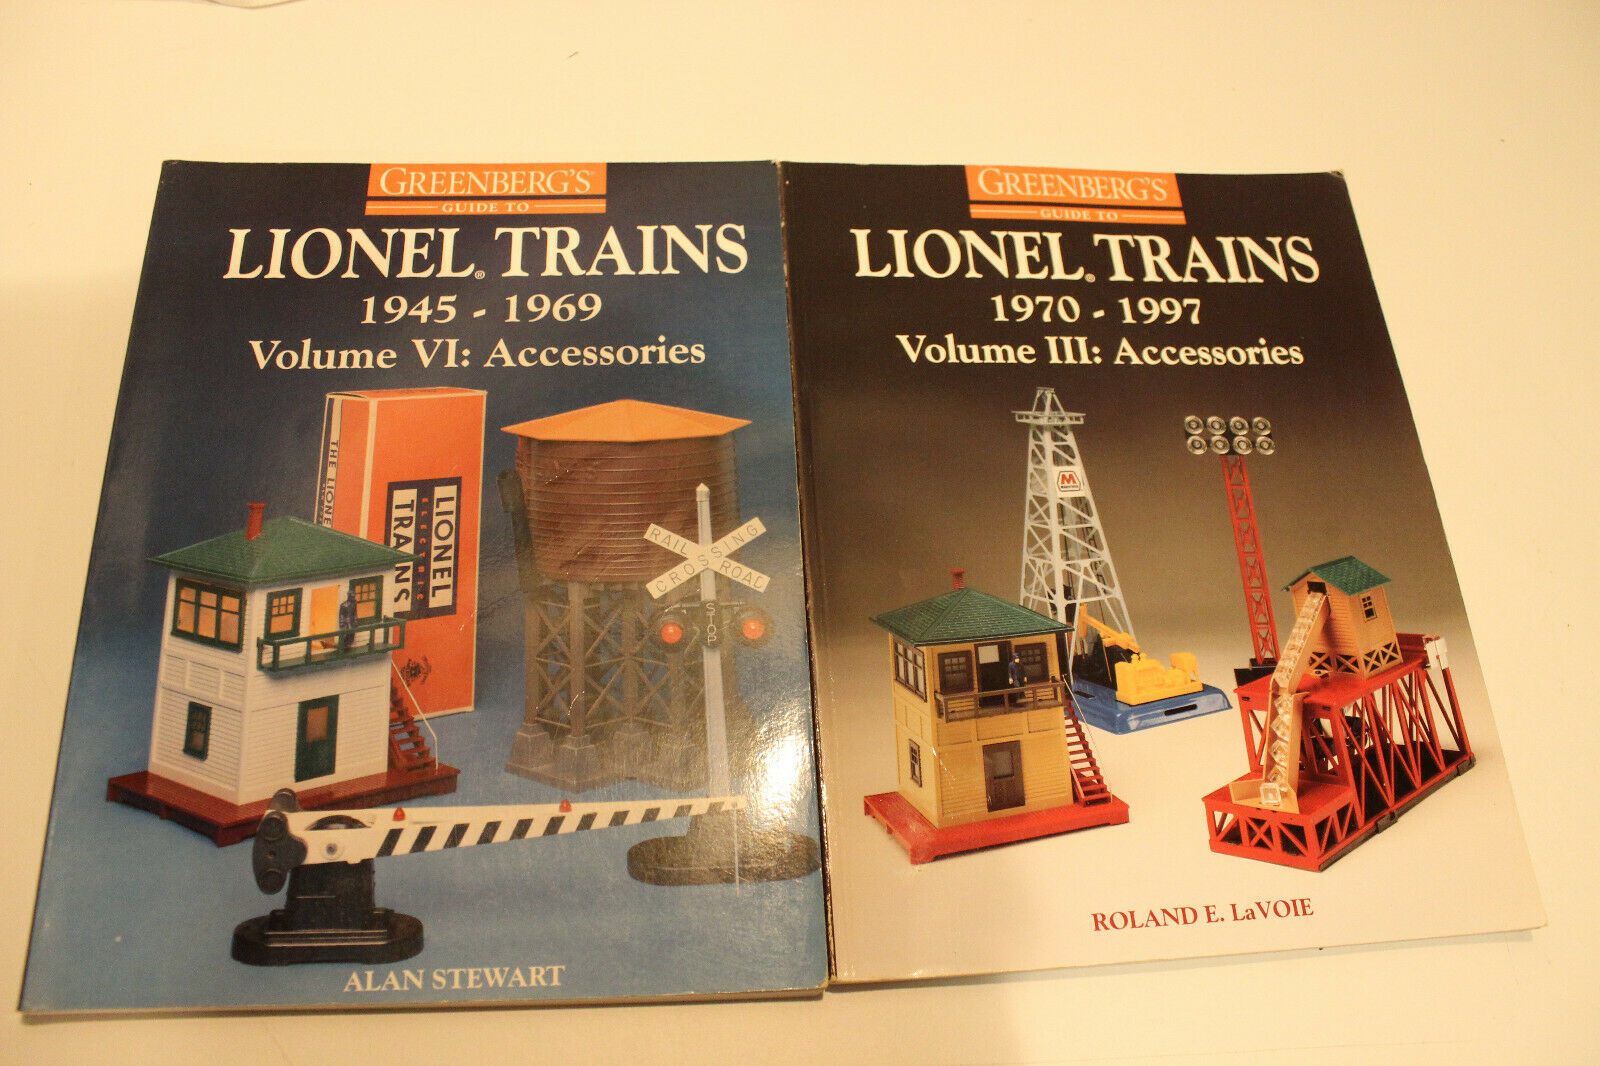 2 Greenberg's Guide to LIONEL TRAINS 45 - 197 Volumes III & VI Accessories soft